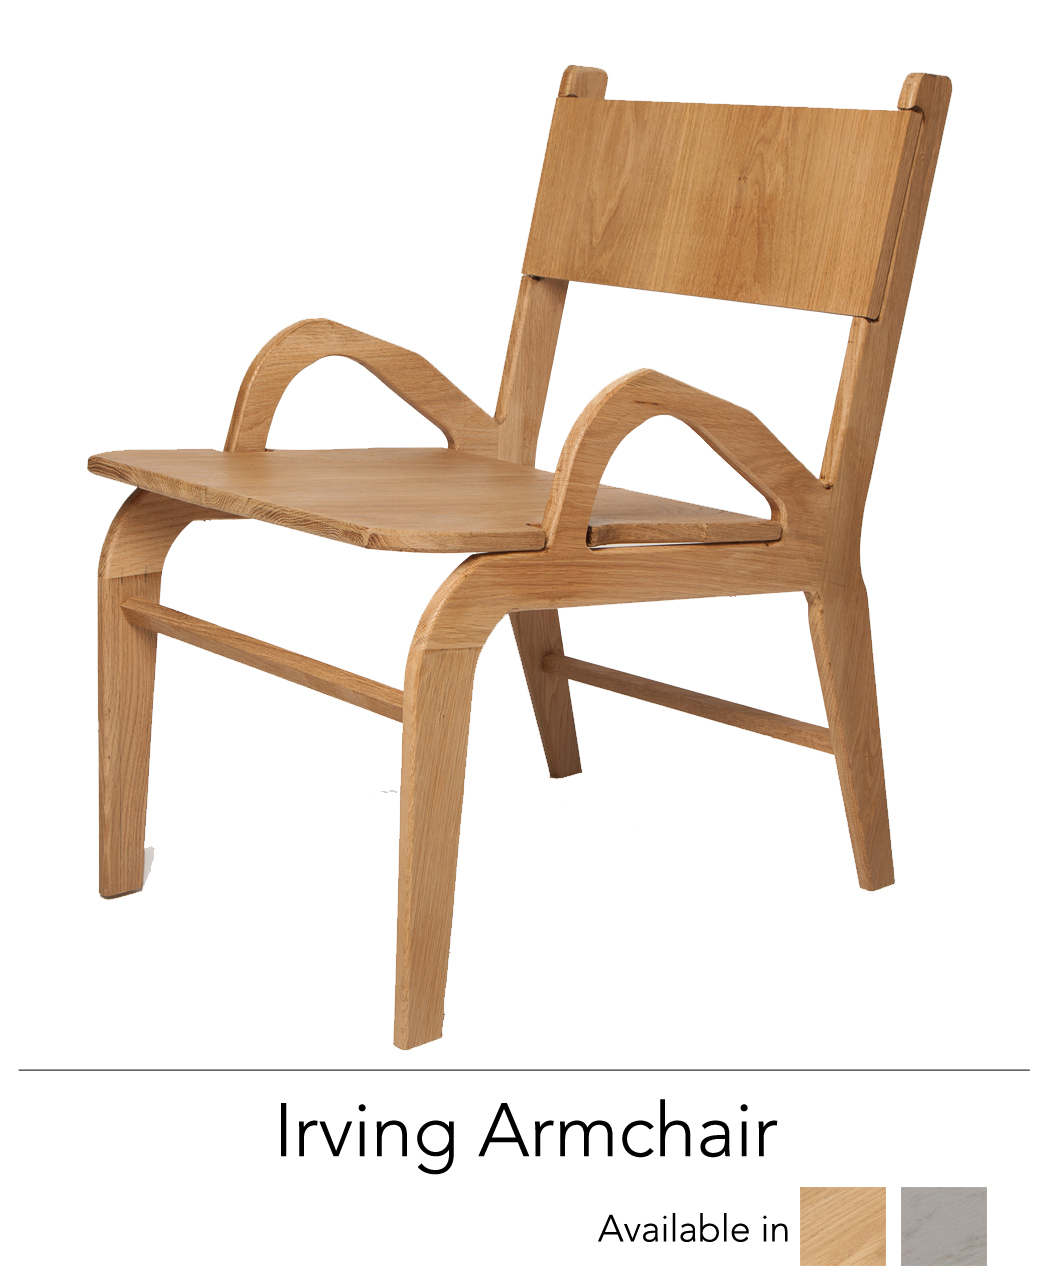 Irving Armchair Front New.jpg